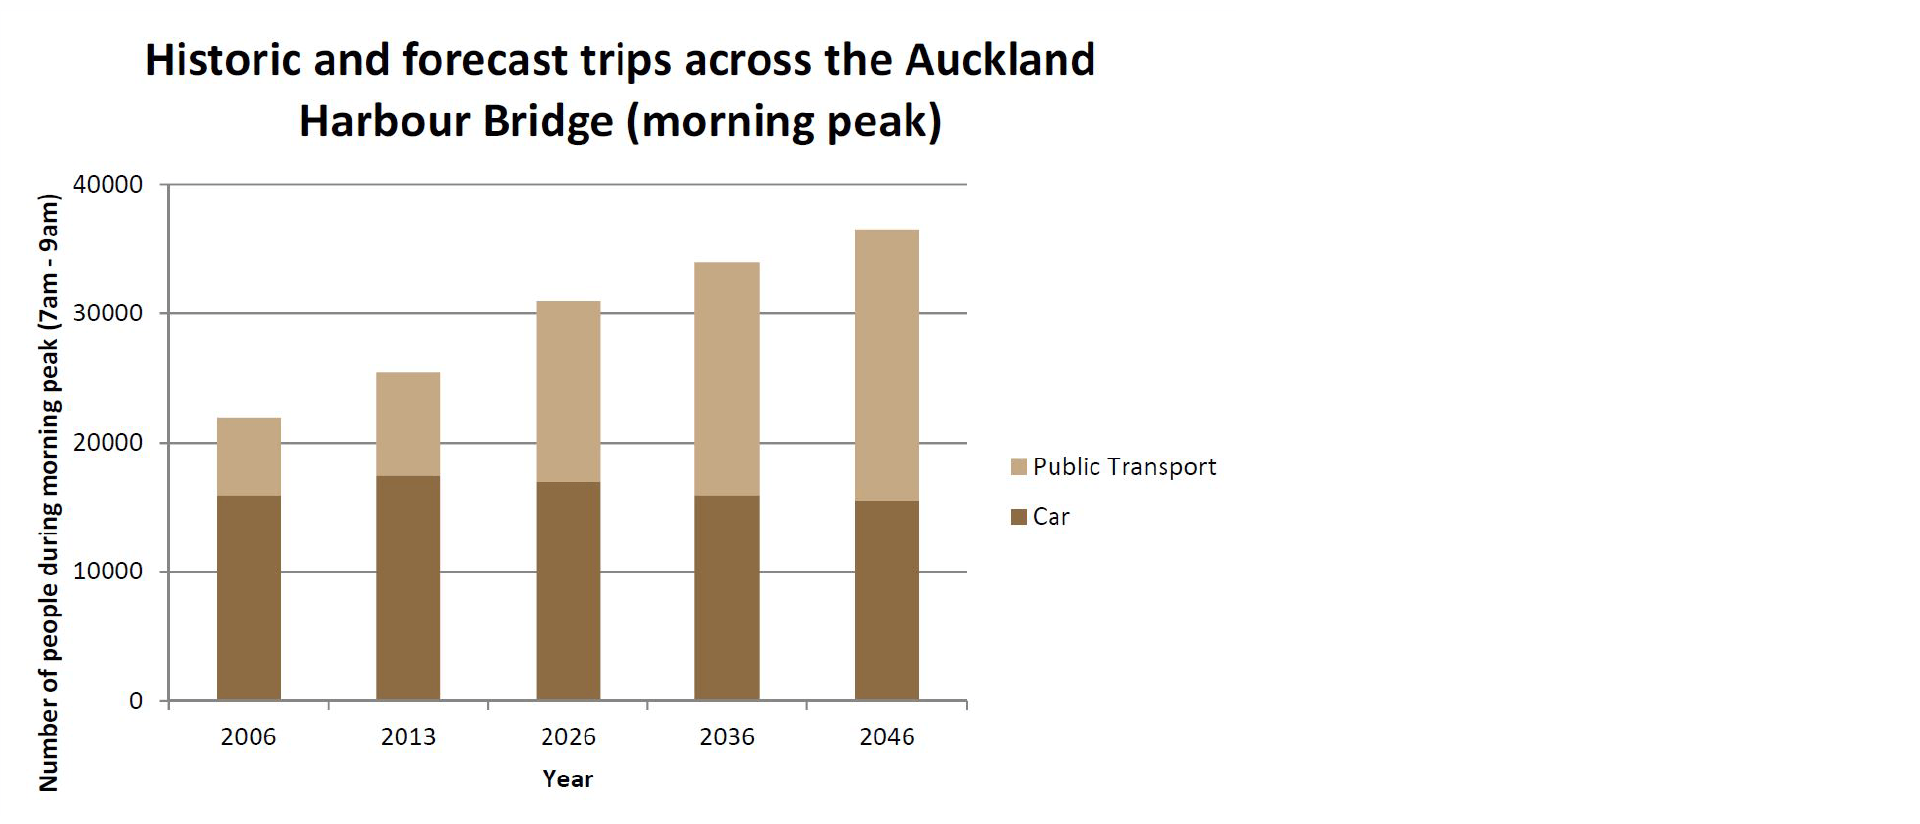 Graph showing the historic and forecast of public transport and car trips across the Auckland Harbour Bridge from 7am to 9am in 2006, 2013, 2026, 2036 and 2046.